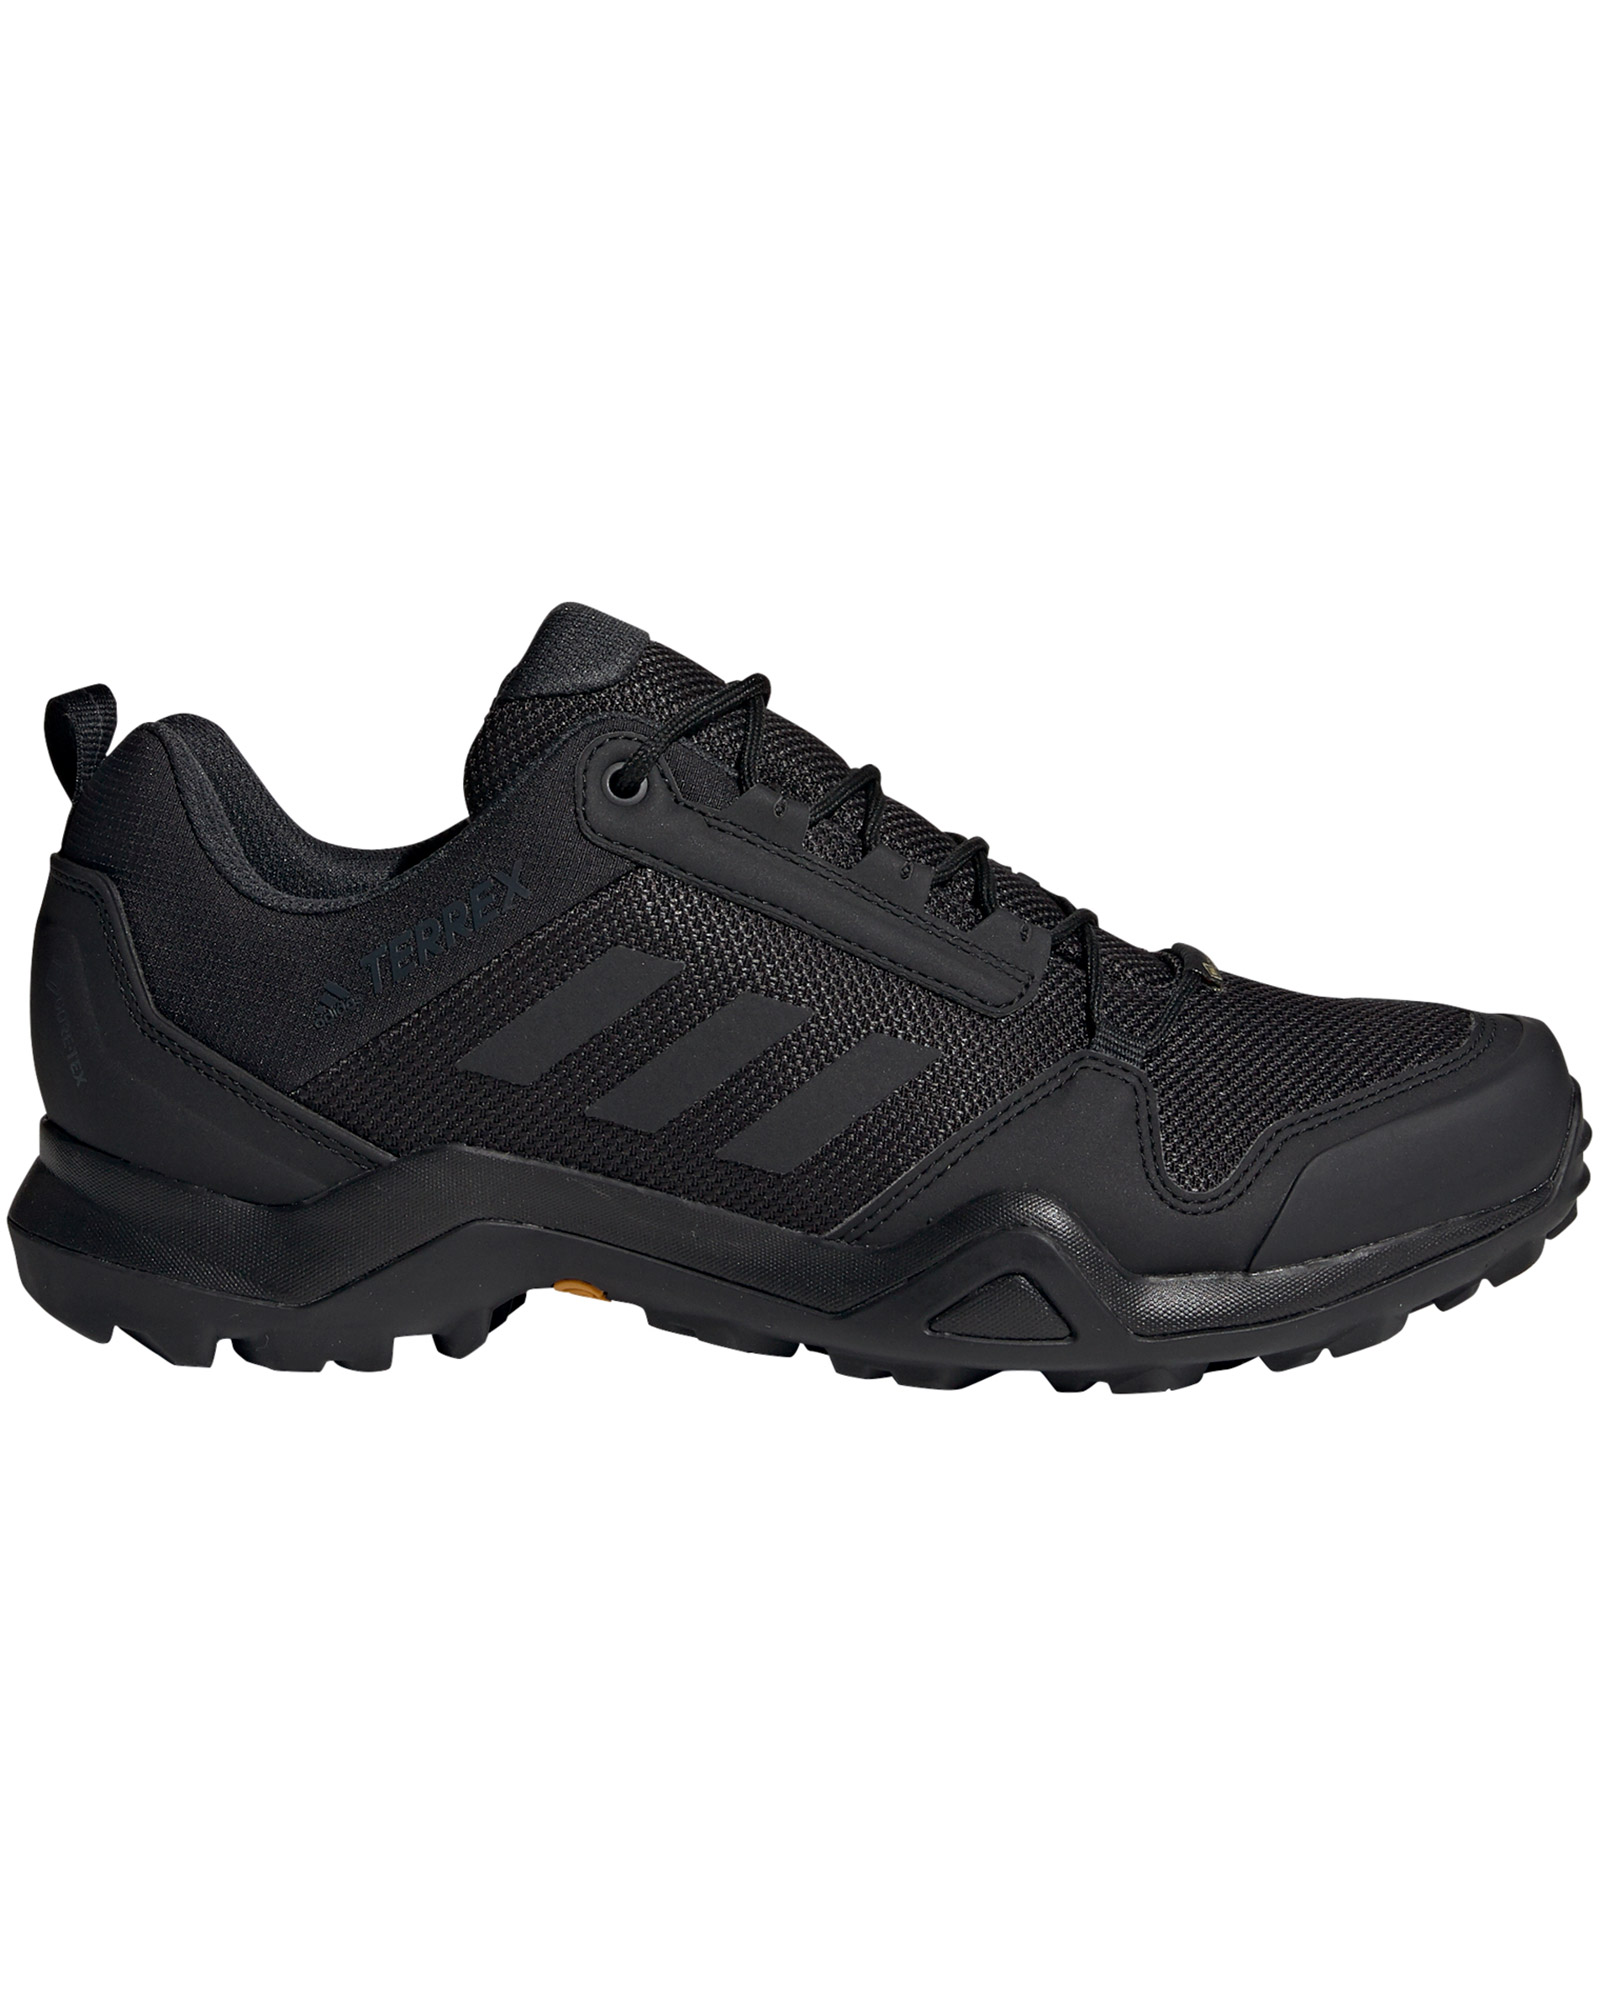 Adidas Terrex Men's Terrex AX3 GORE-TEX Walking Shoes 0